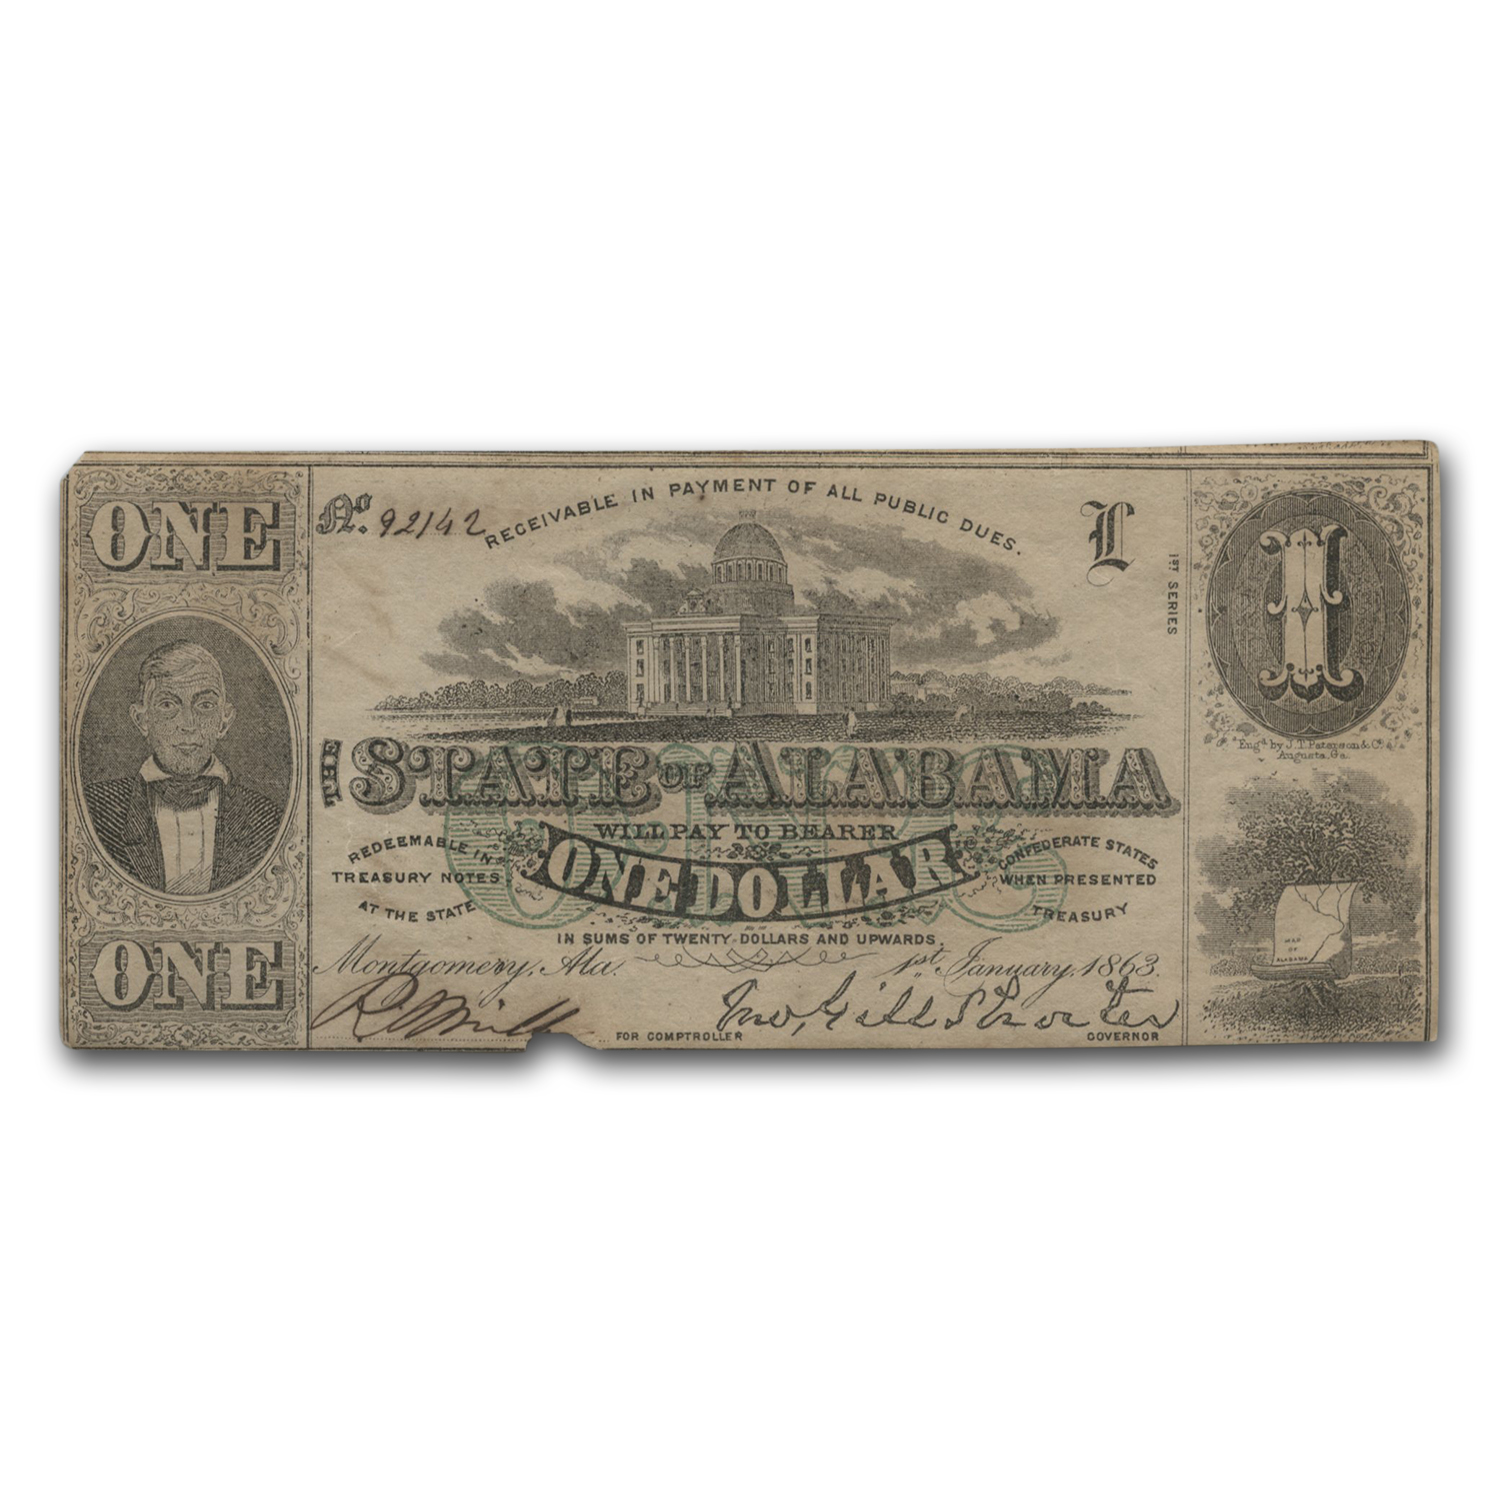 1863 $1.00 State of Alabama (CR-2) VF